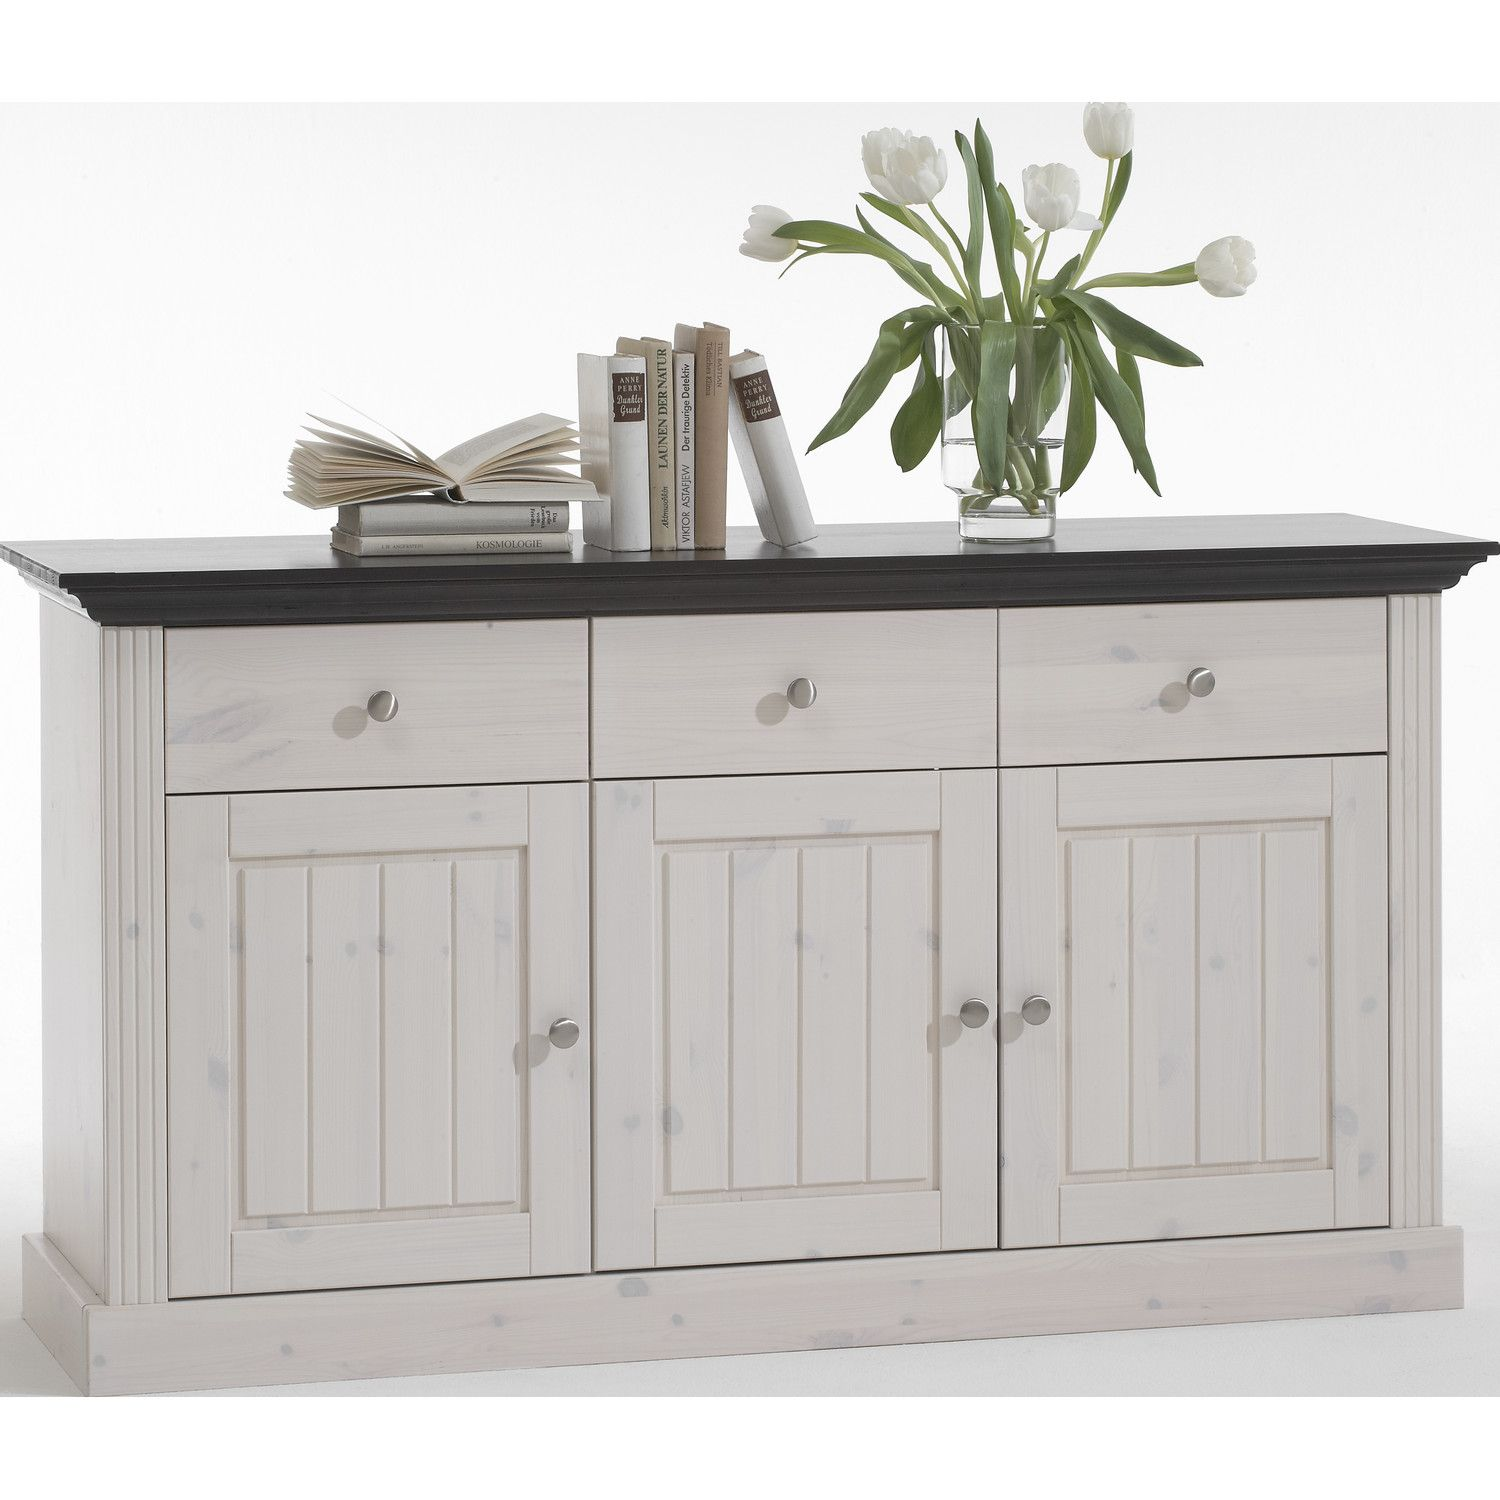 Furlong 3 Door, 3 Drawer Sideboard | Wayfair UK